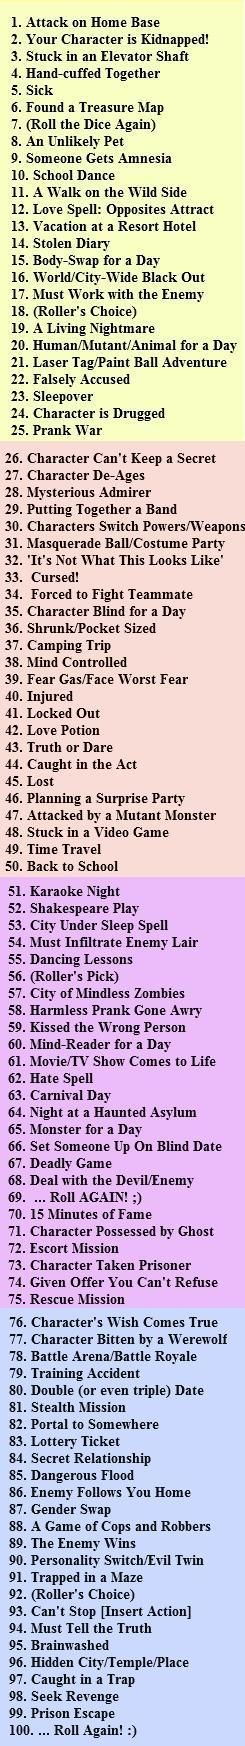 Fiction Prompts.  I found this on Pintrest.  Go ahead, writers.  Have at them.